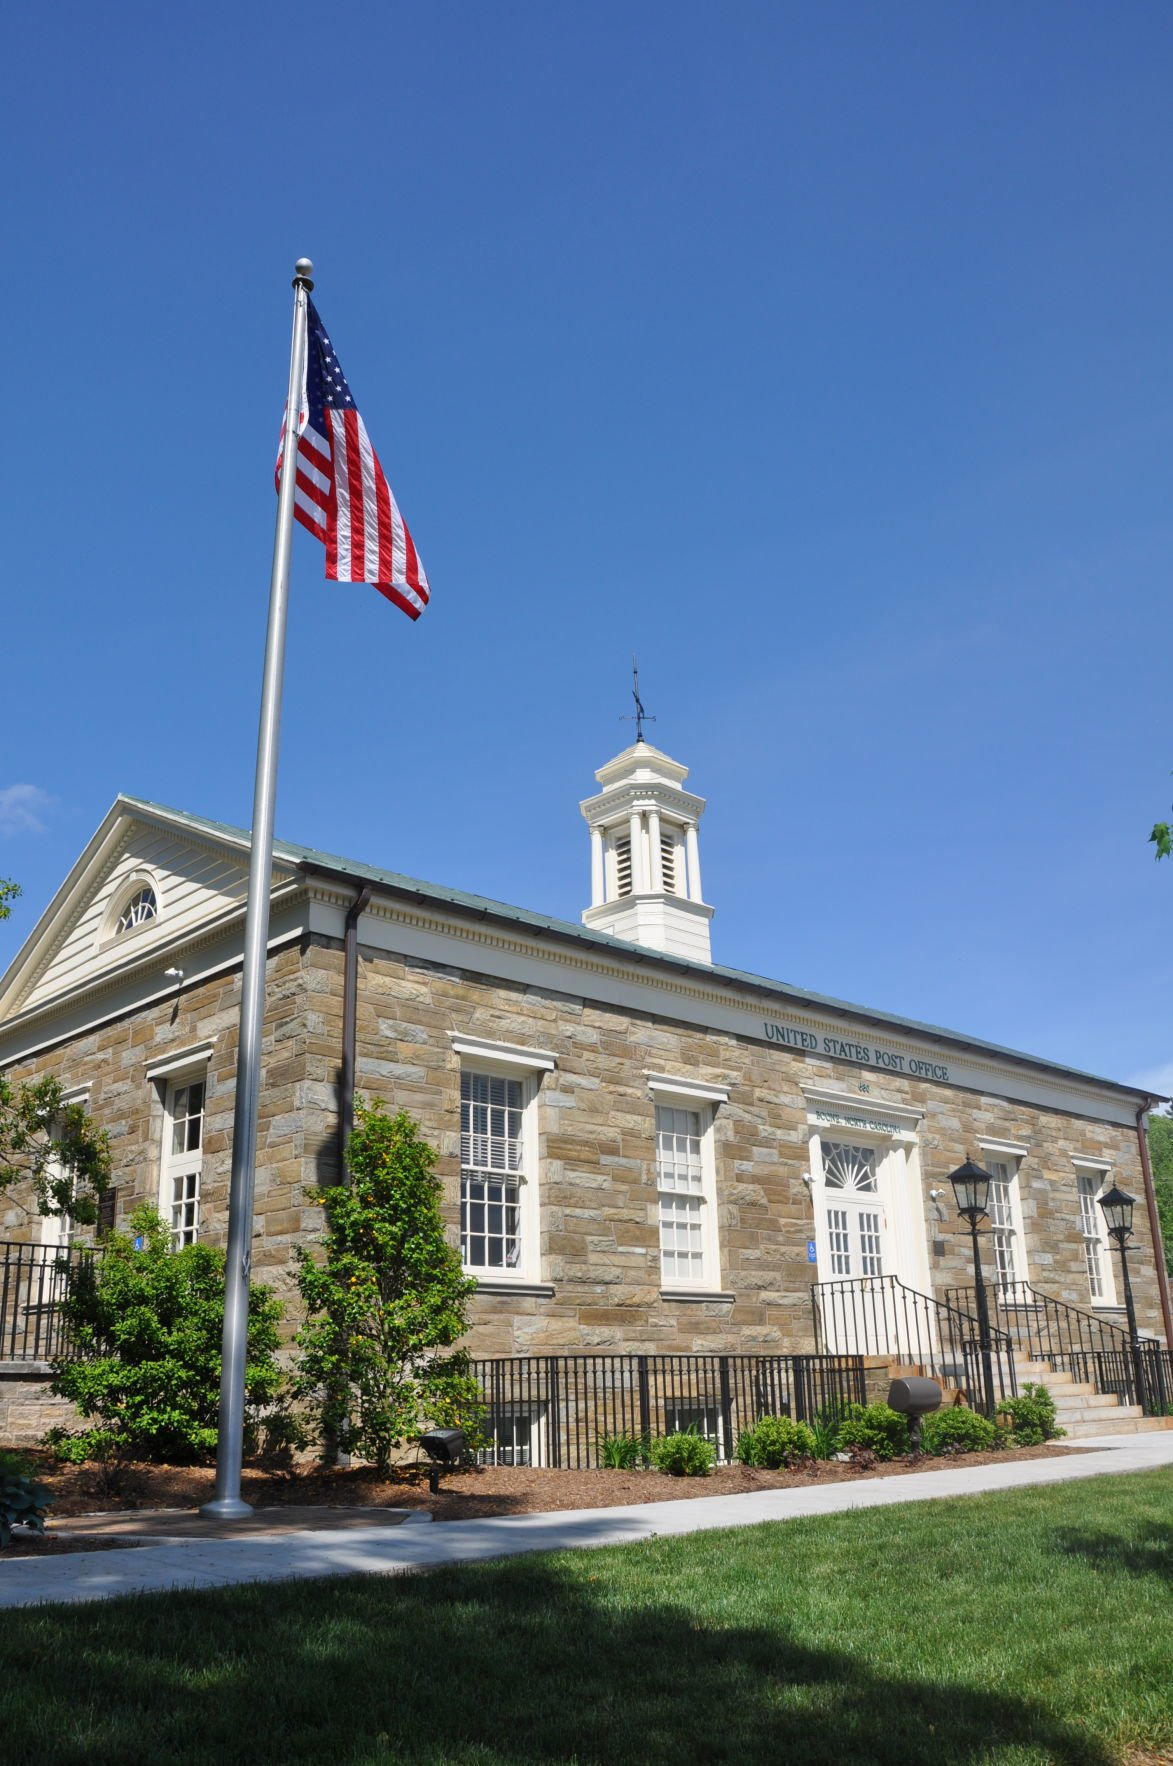 Downtown Boone post office